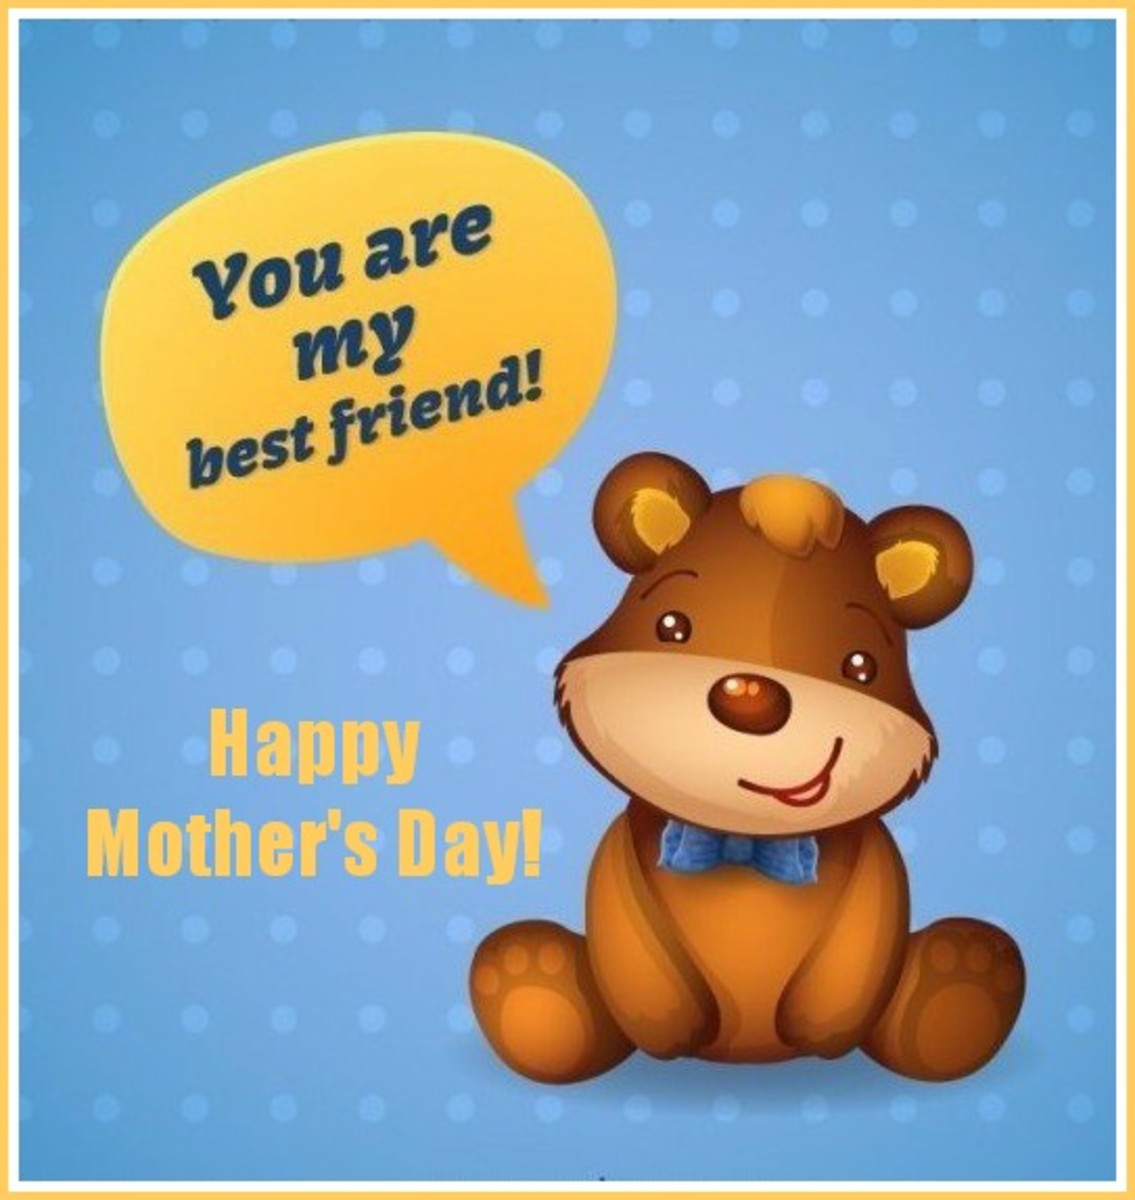 Mother's Day Card with Teddy Bear